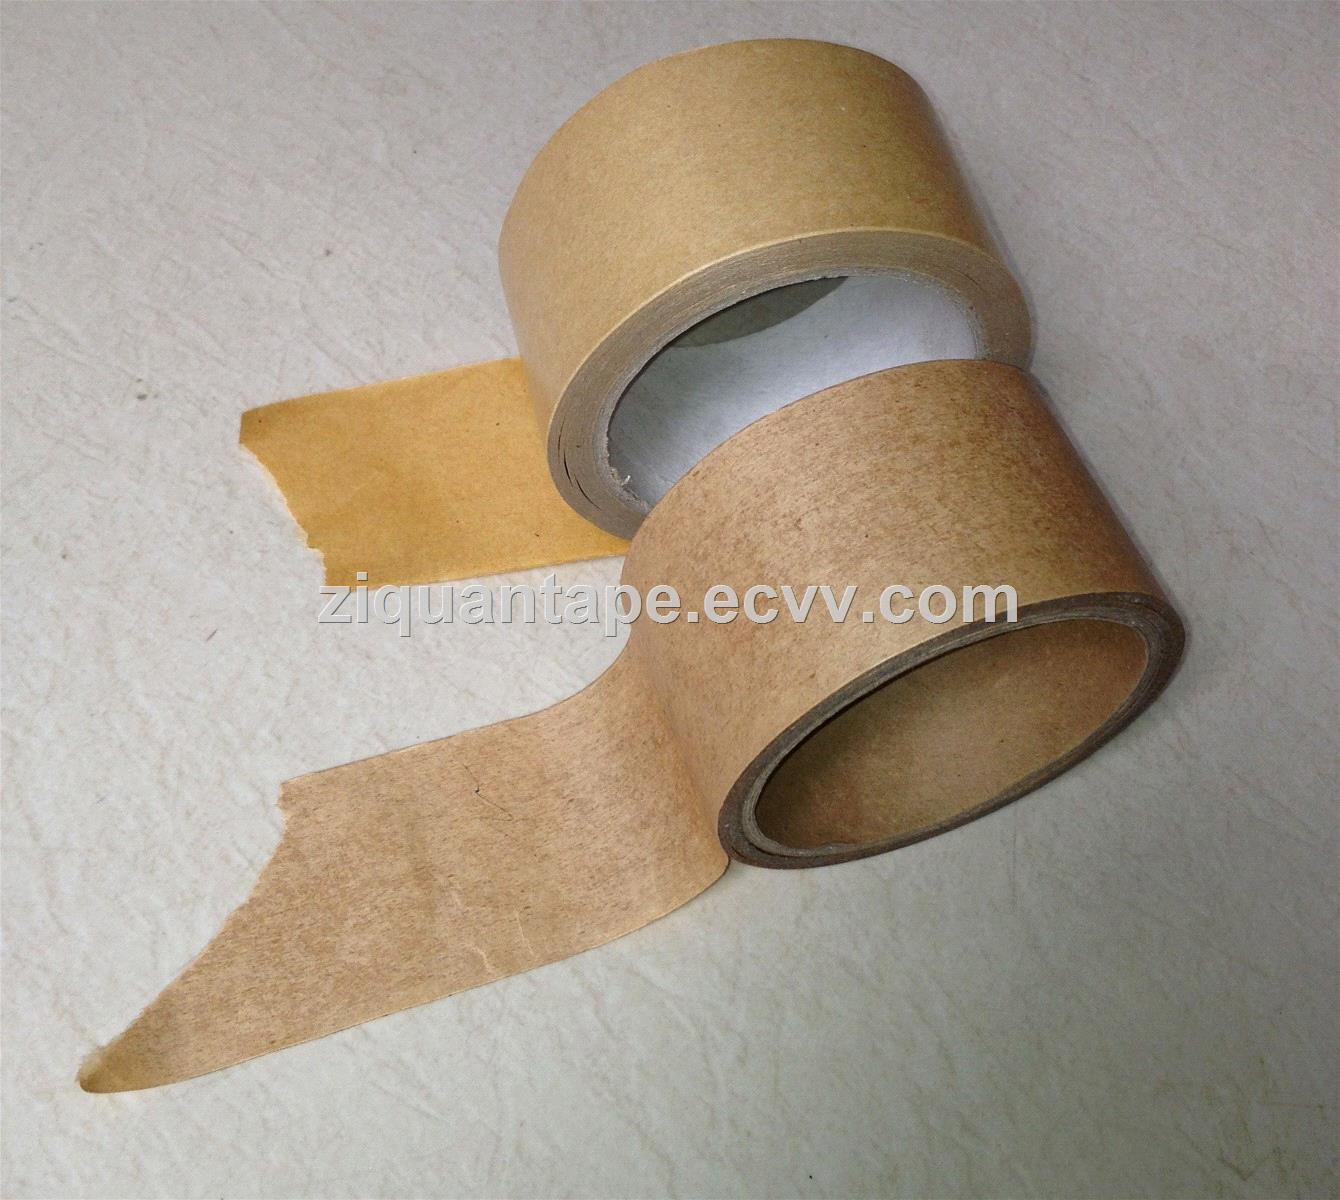 Craft Paper Tape for Packing with 130mic*60mm, Adhesive Tape